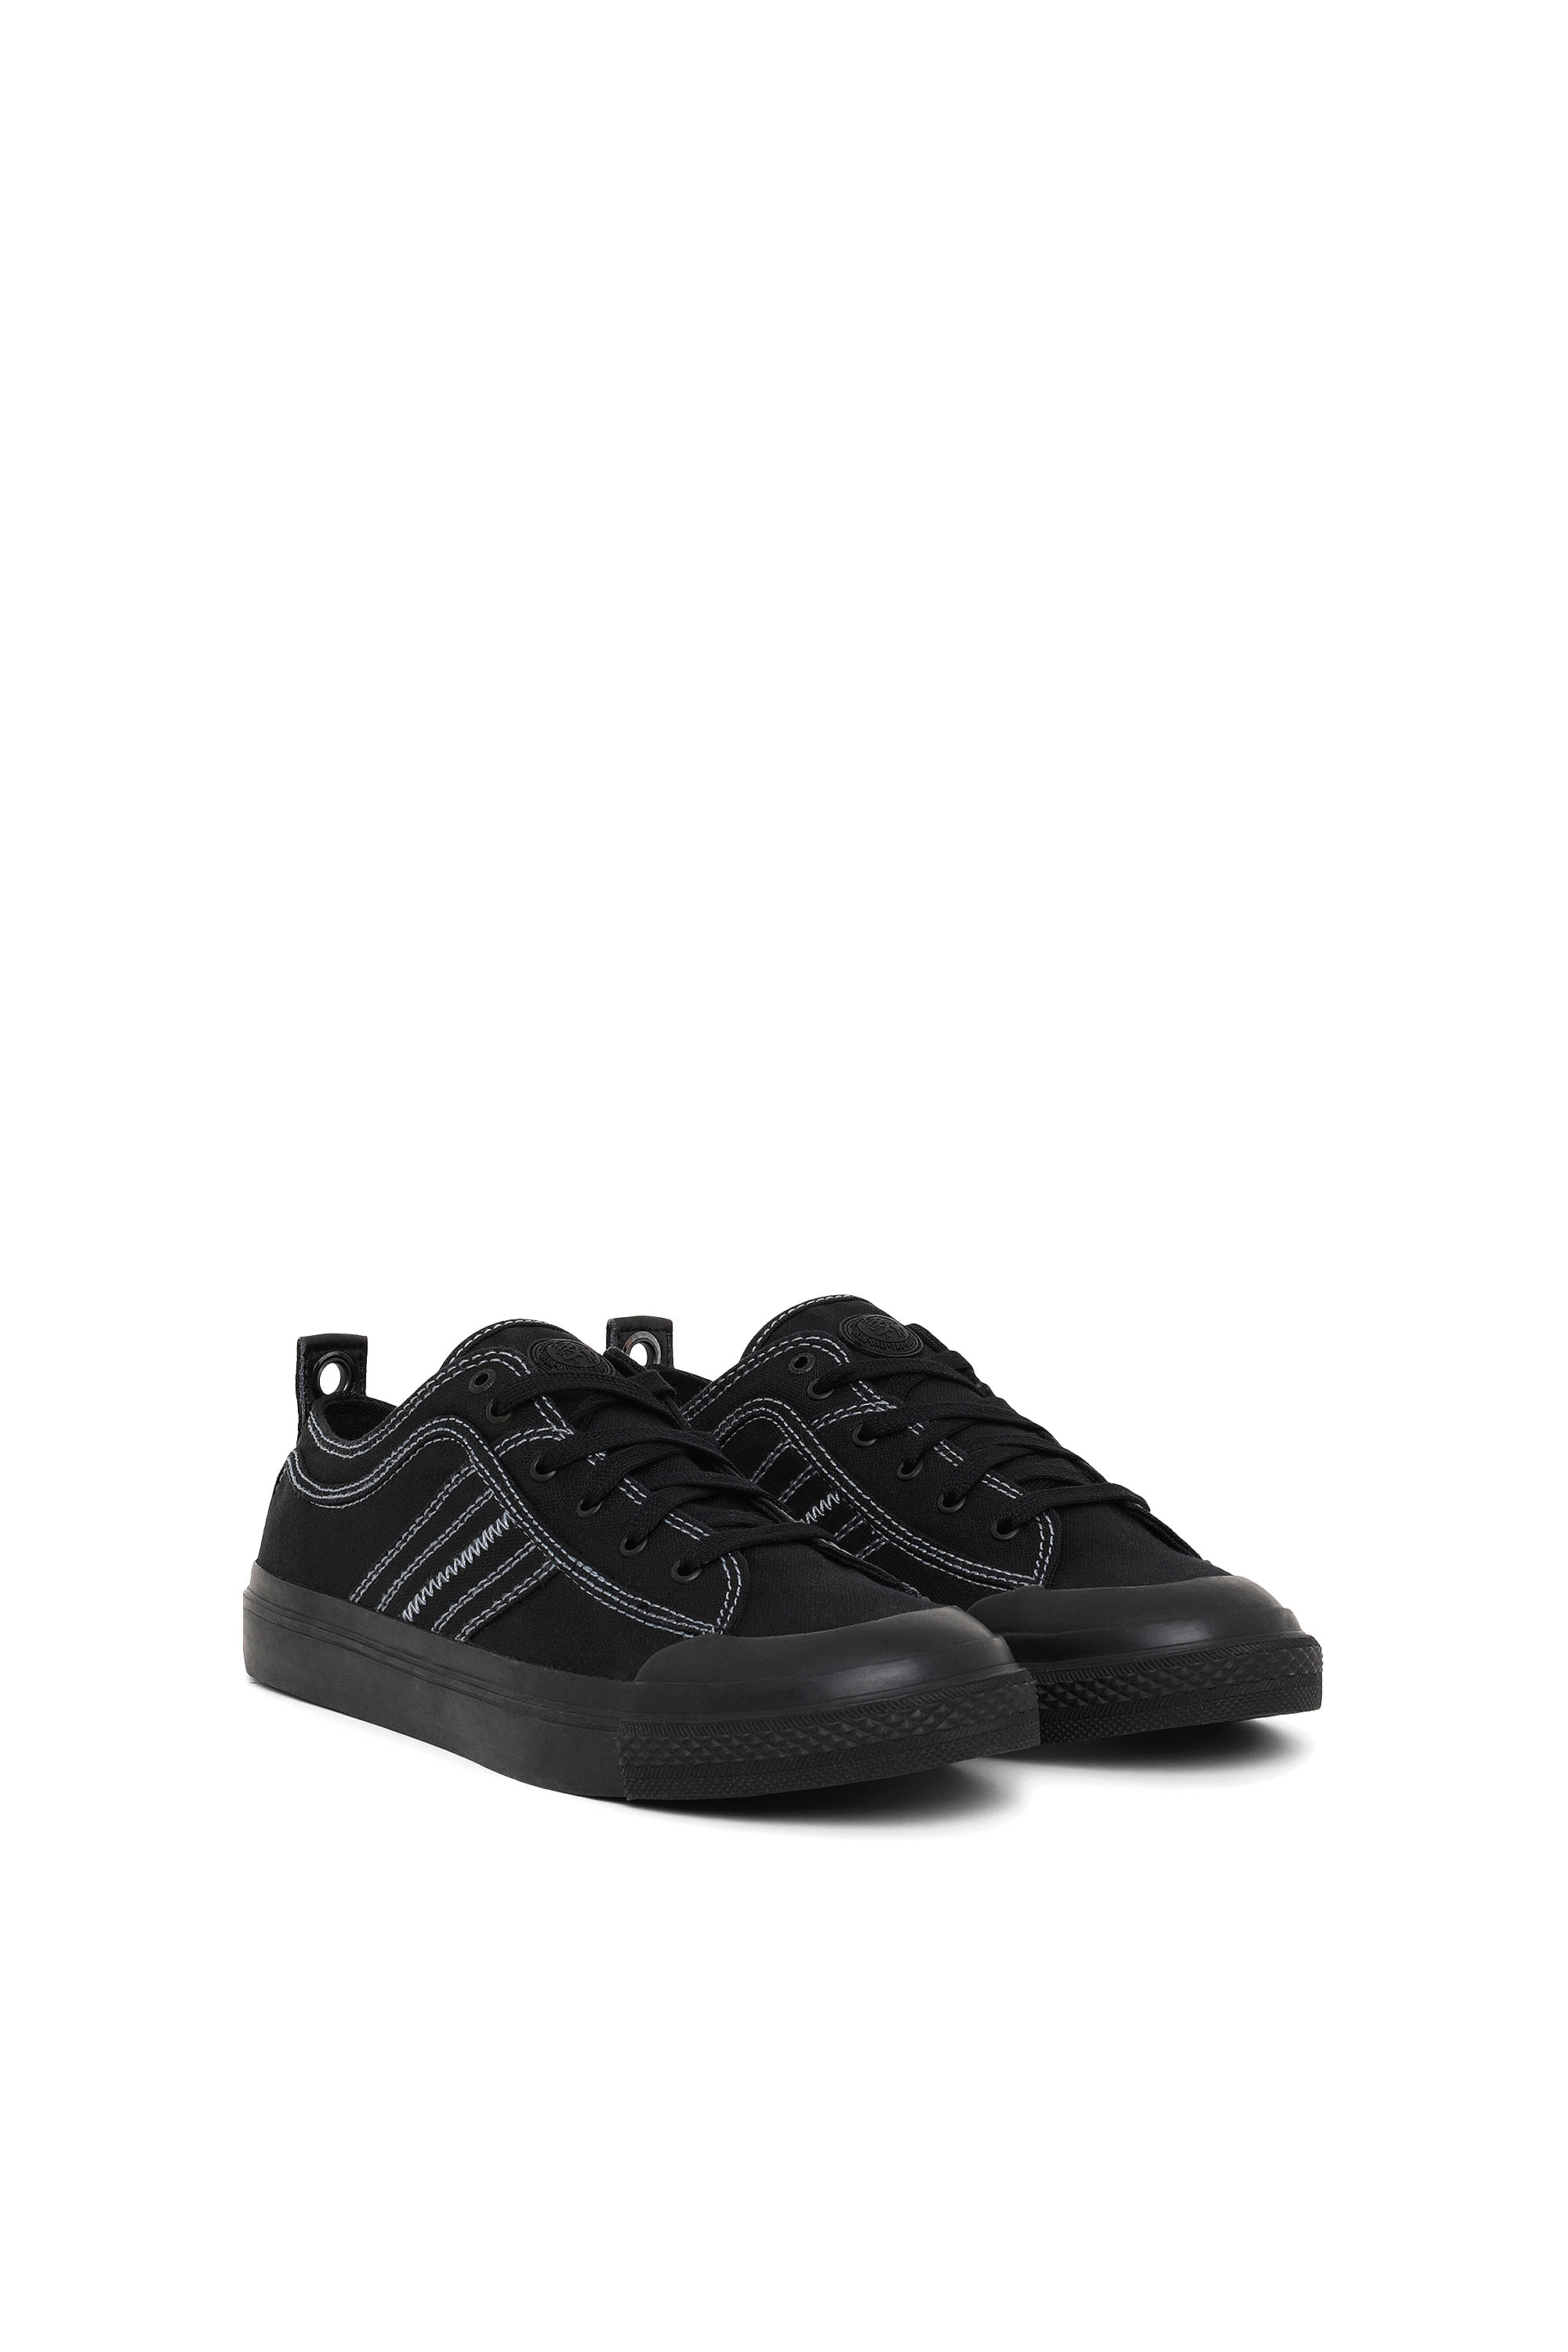 Diesel - S-ASTICO LOW LACE,  - Baskets - Image 2